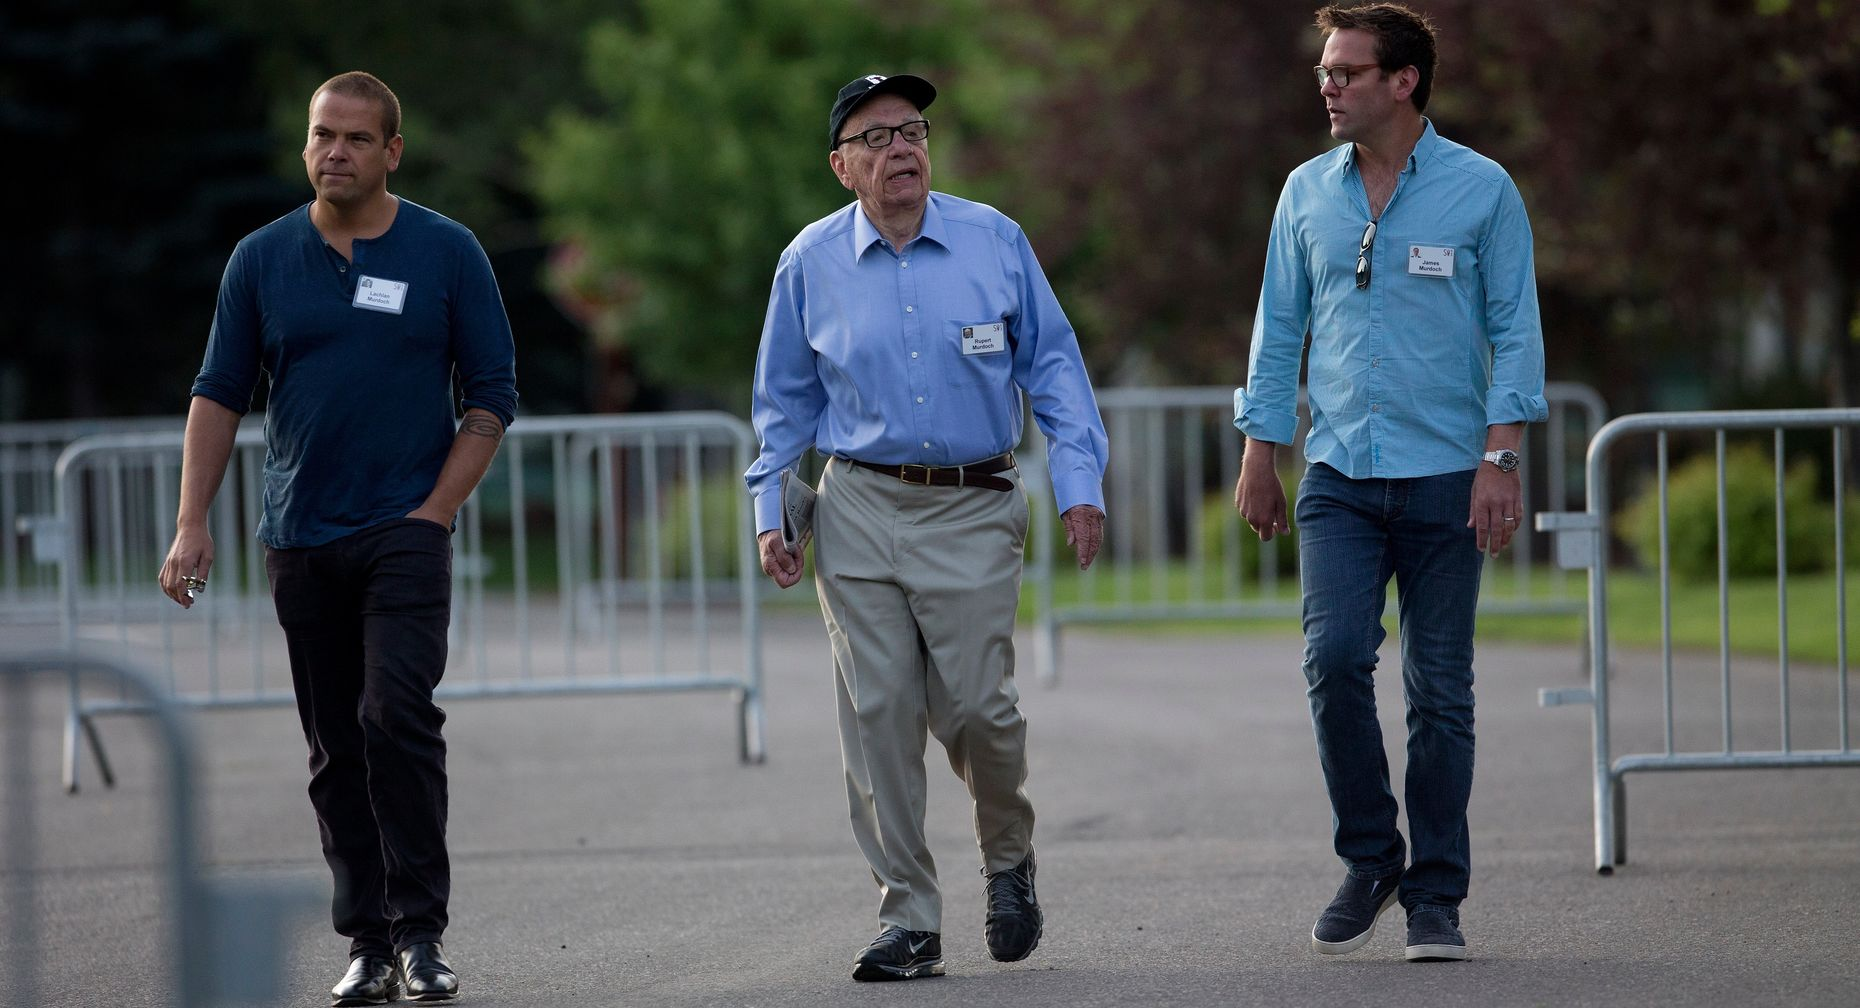 Lachlan, Rupert and James Murdoch. Photo by Bloomberg.